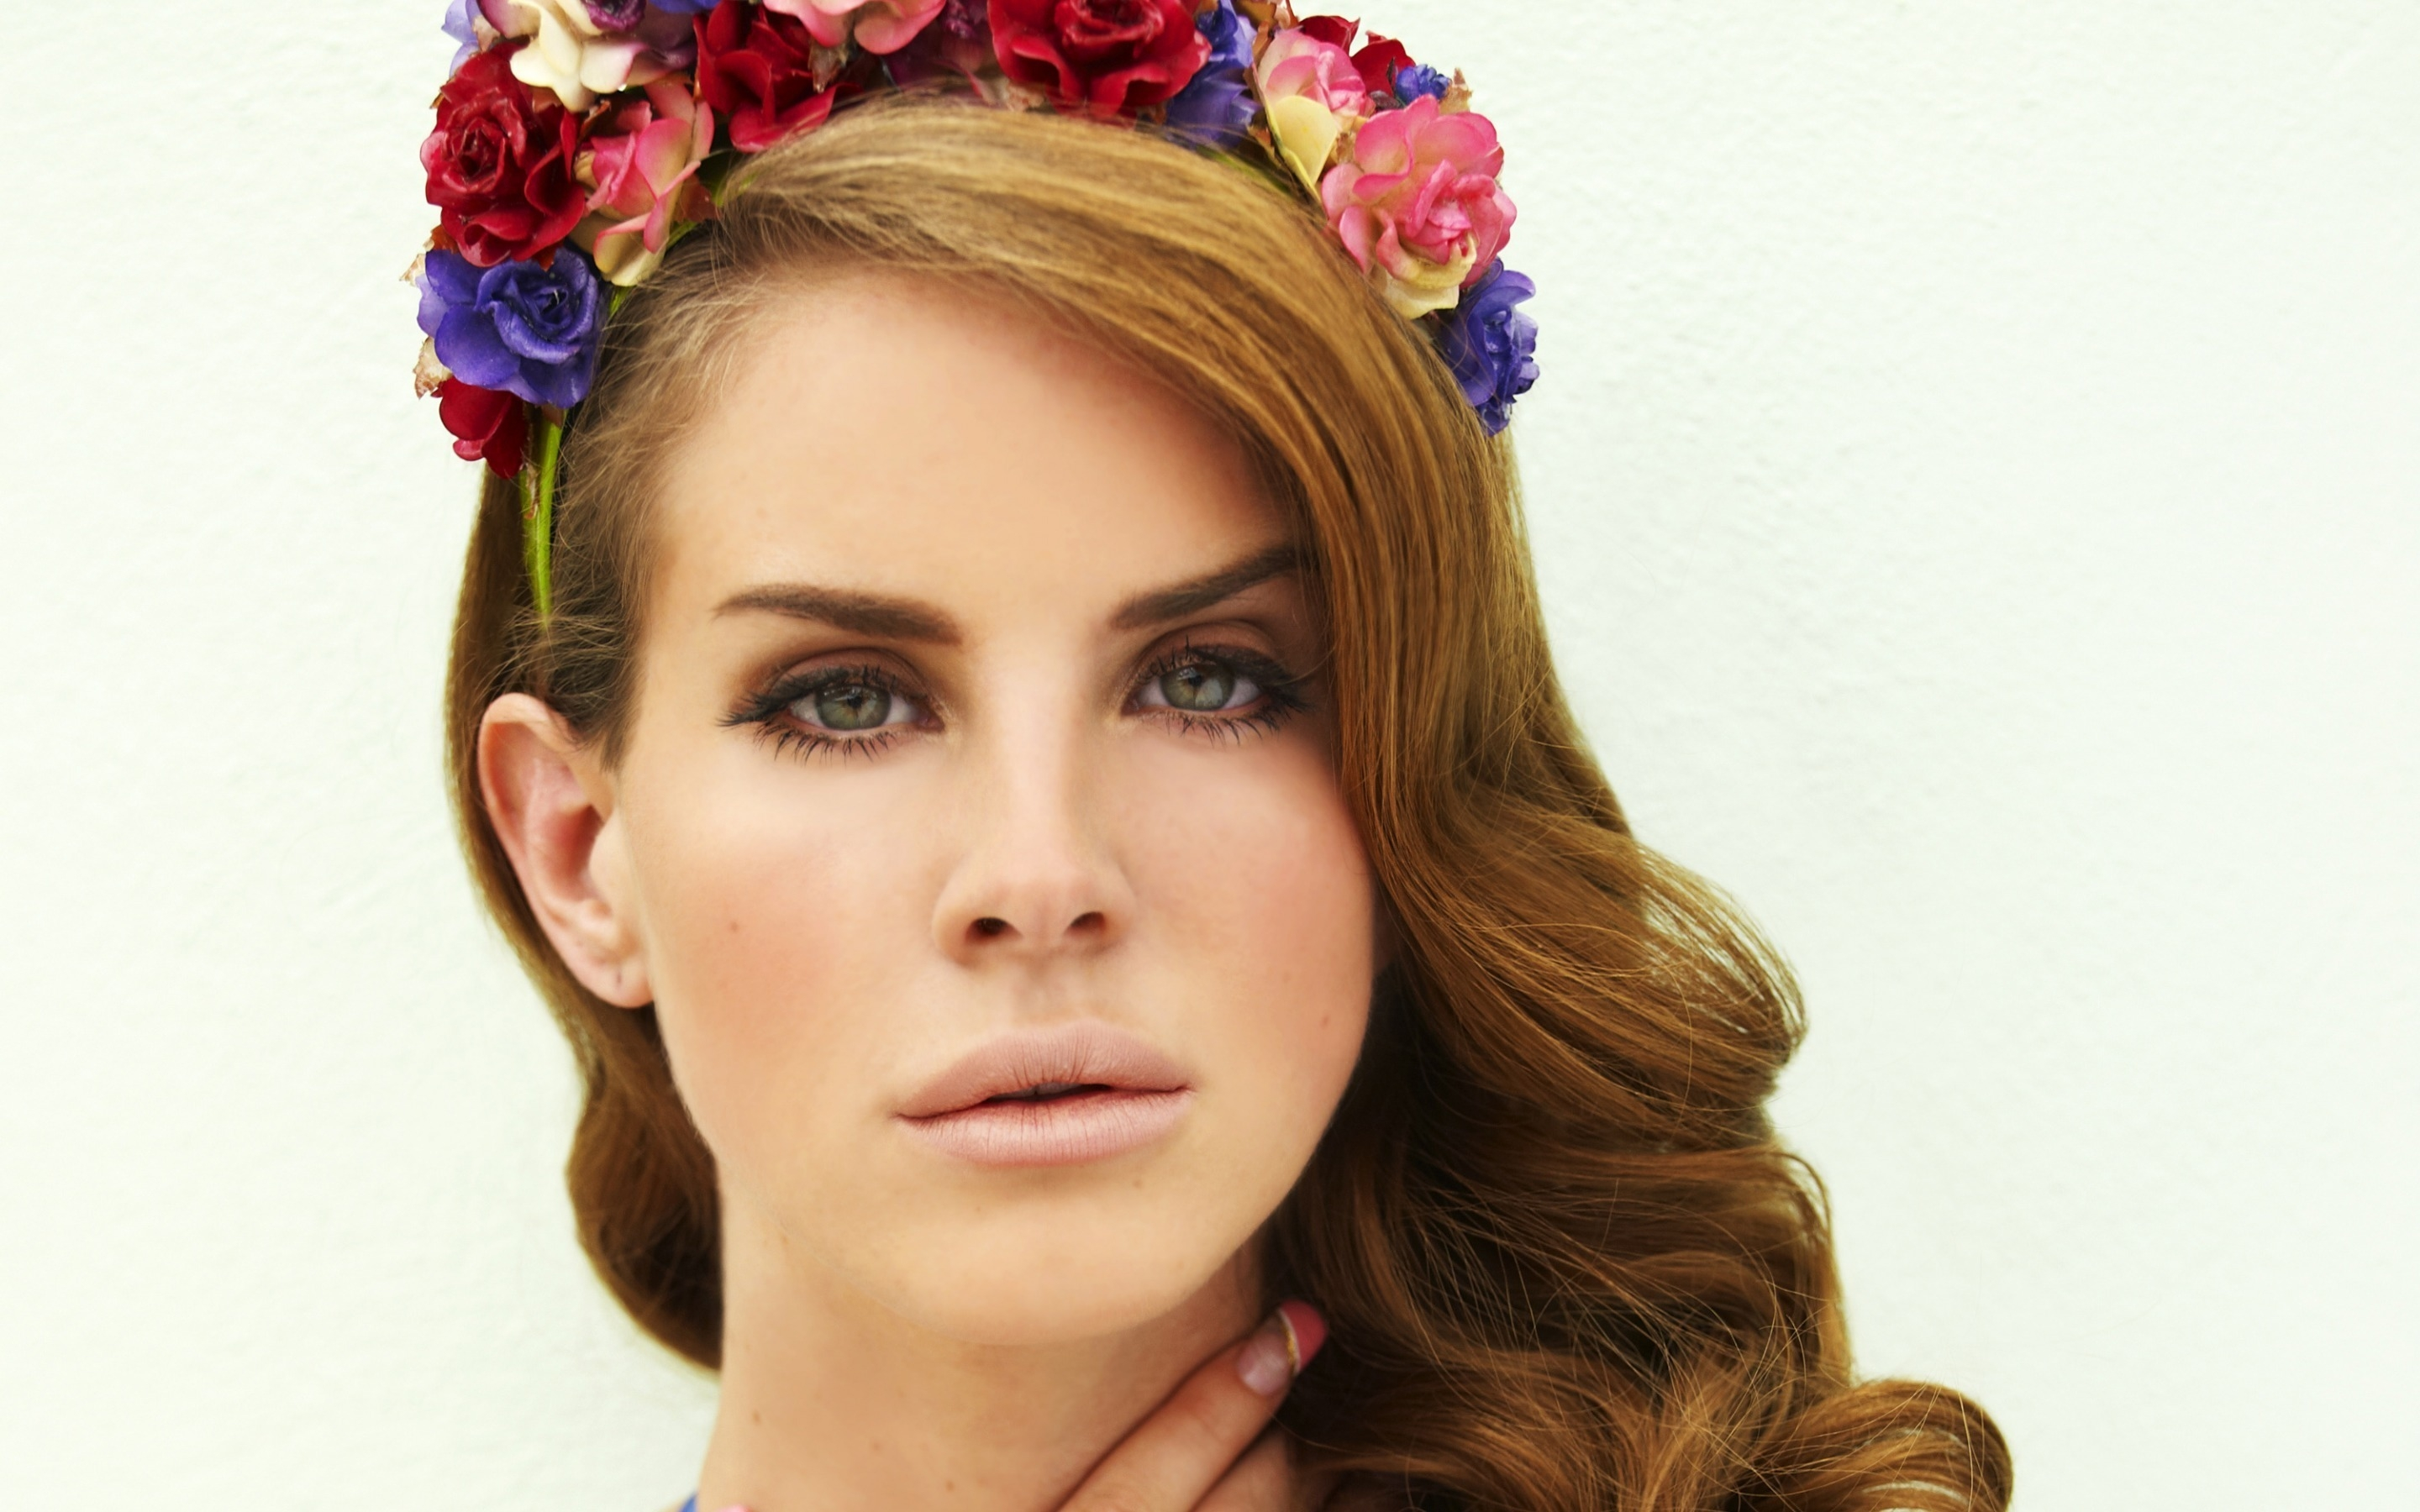 Lana Del Rey Floral Headband  for 2880 x 1800 Retina Display resolution